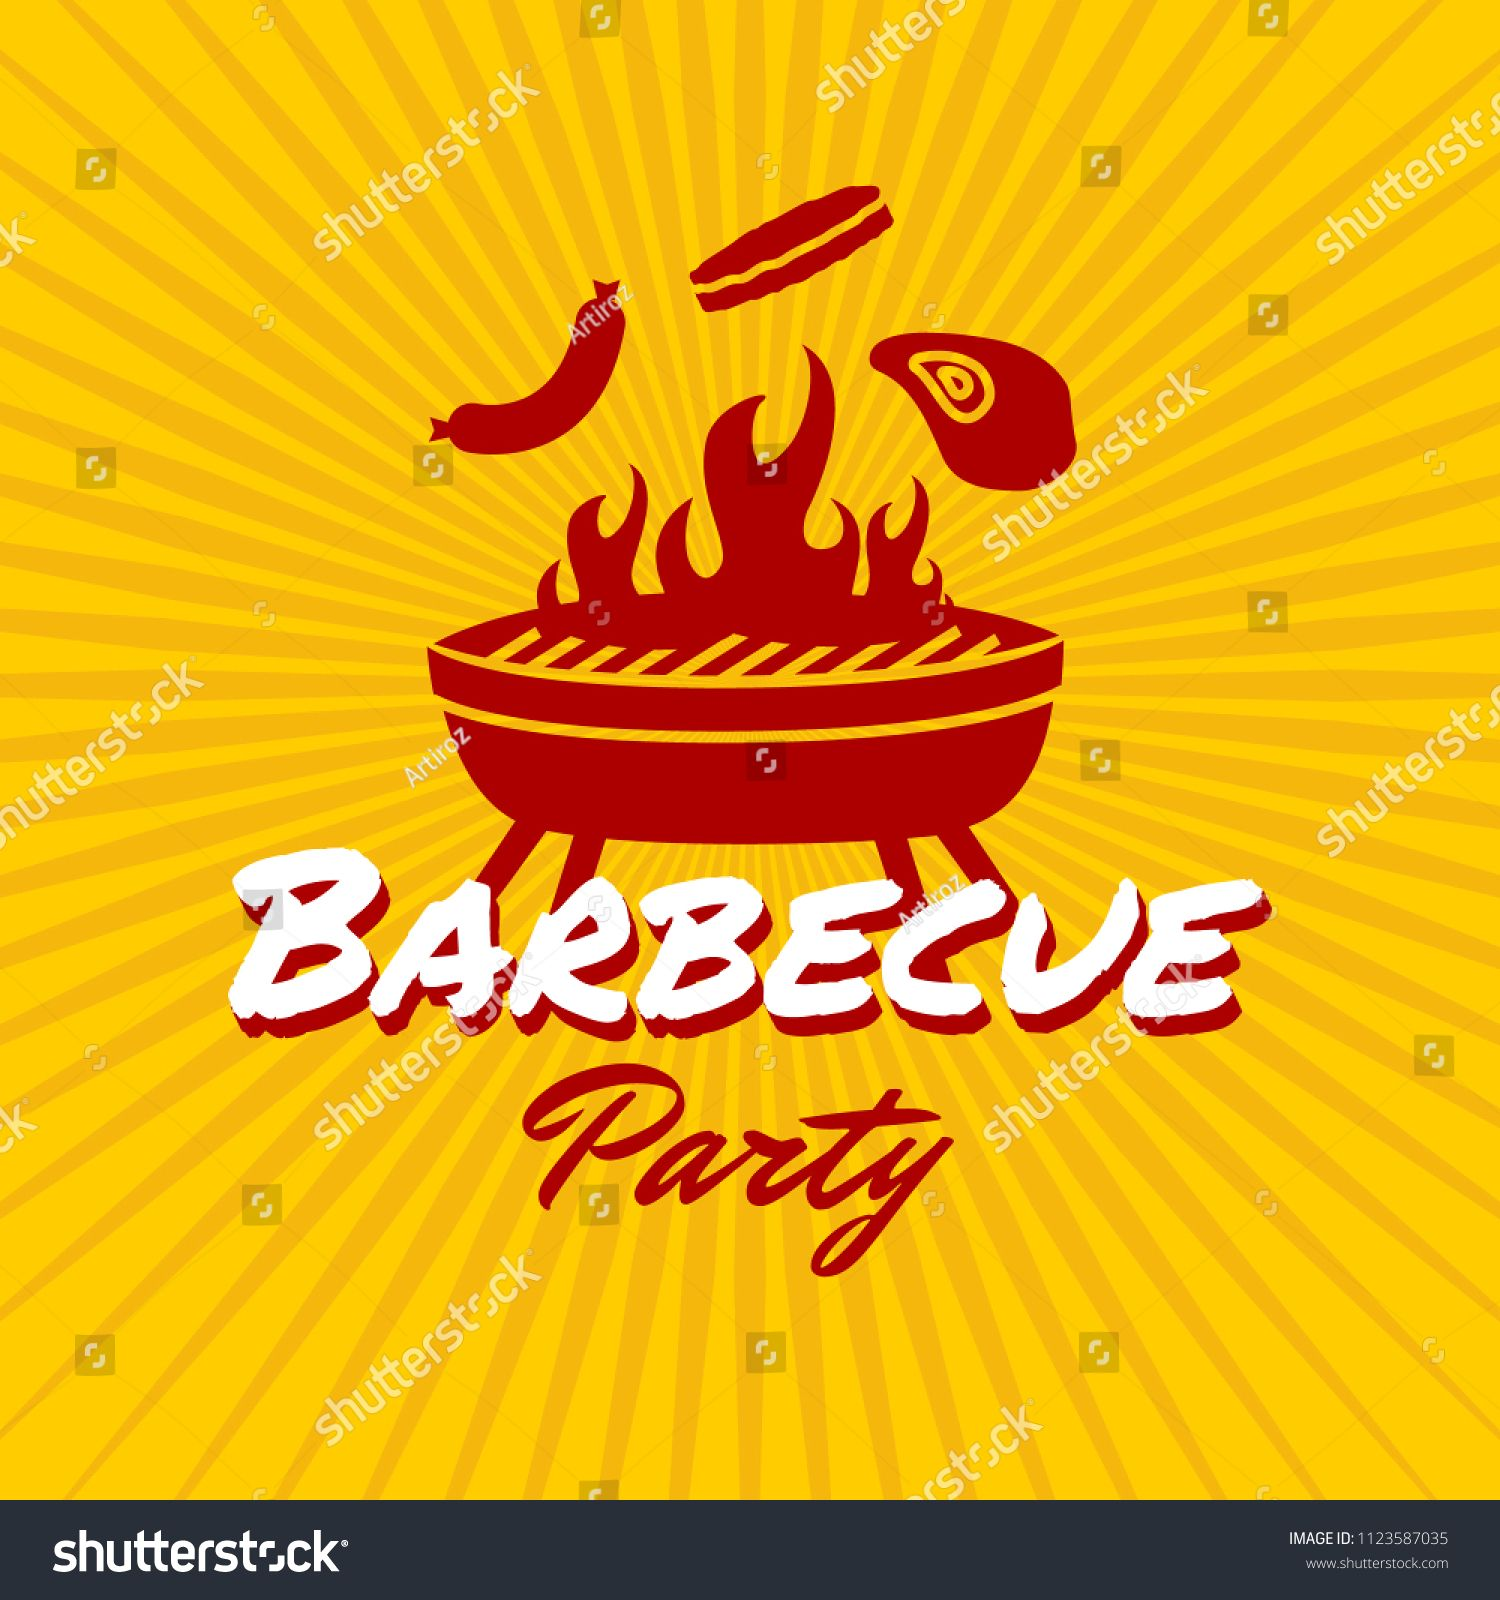 Barbecue party logo template with red maroon and